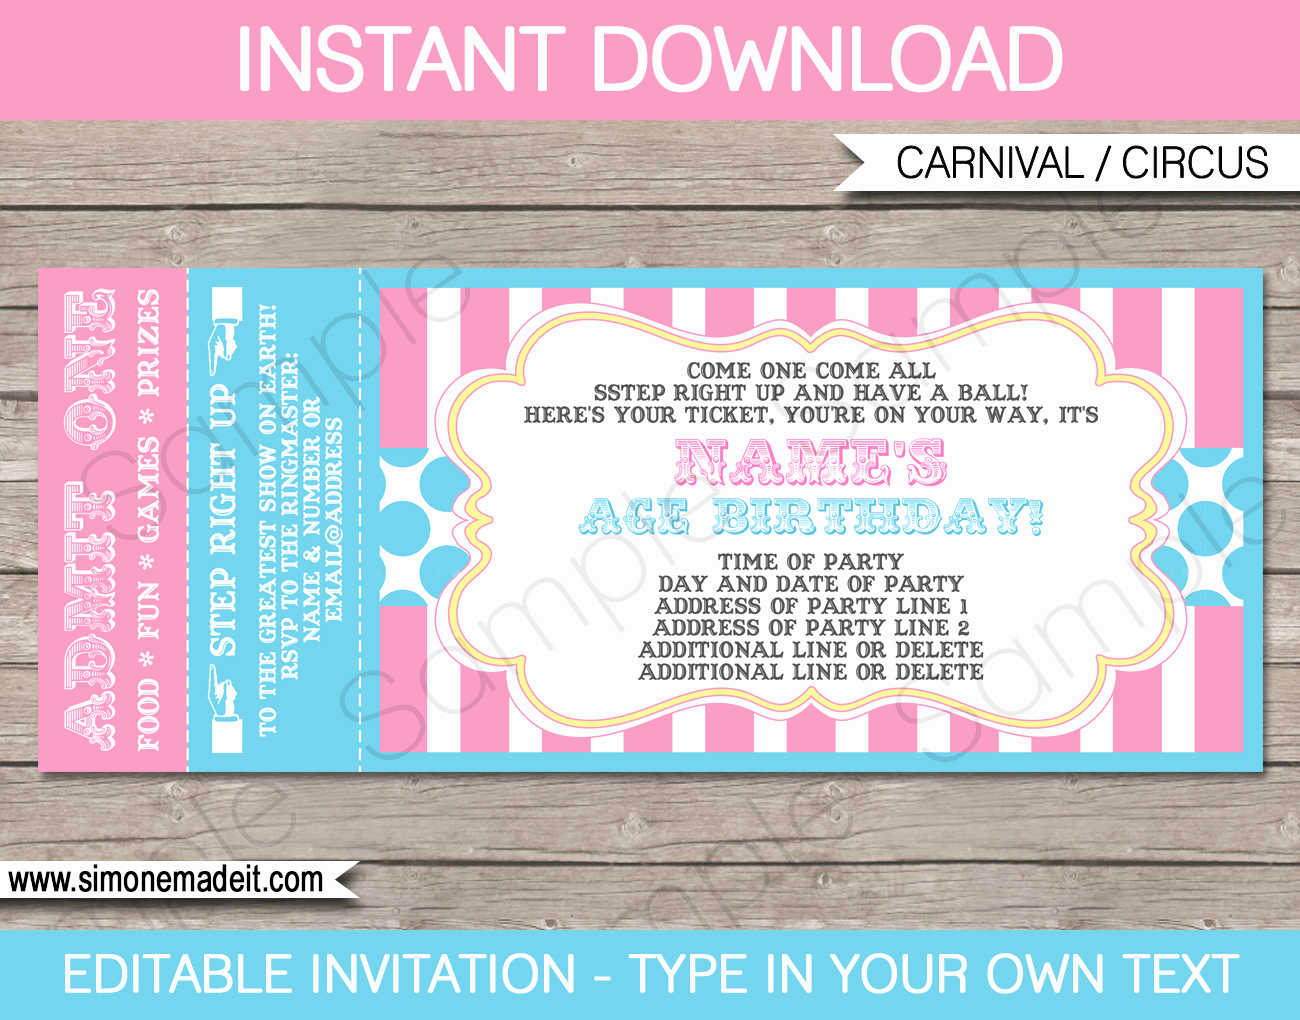 Carnival Ticket Invitation Unique Carnival Ticket Invitations Template Carnival